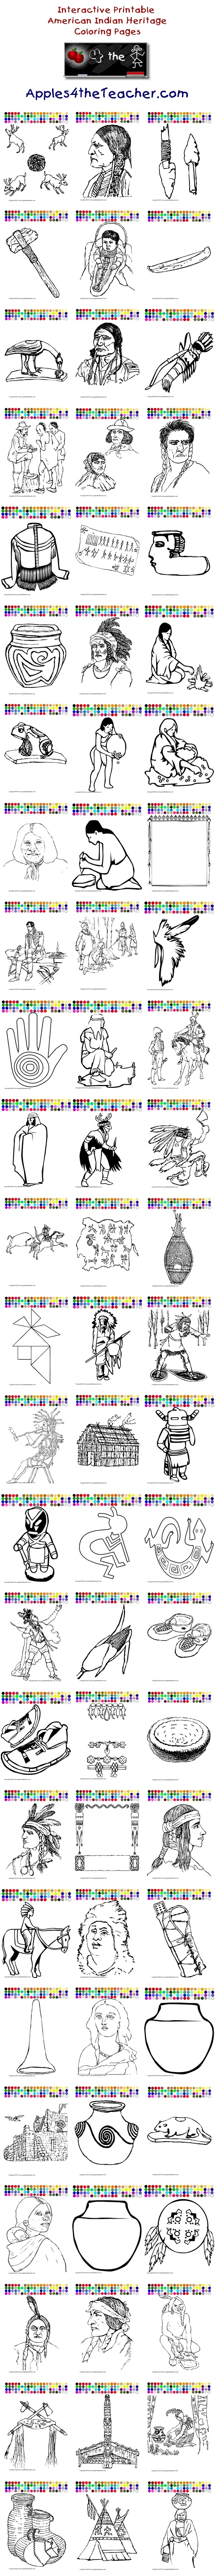 Apples4theteacher.com - Printable interactive American Indian Heritage Month coloring pages, American Indian Heritage Month coloring pages for kids  http://www.apples4theteacher.com/coloring-pages/native-americans/